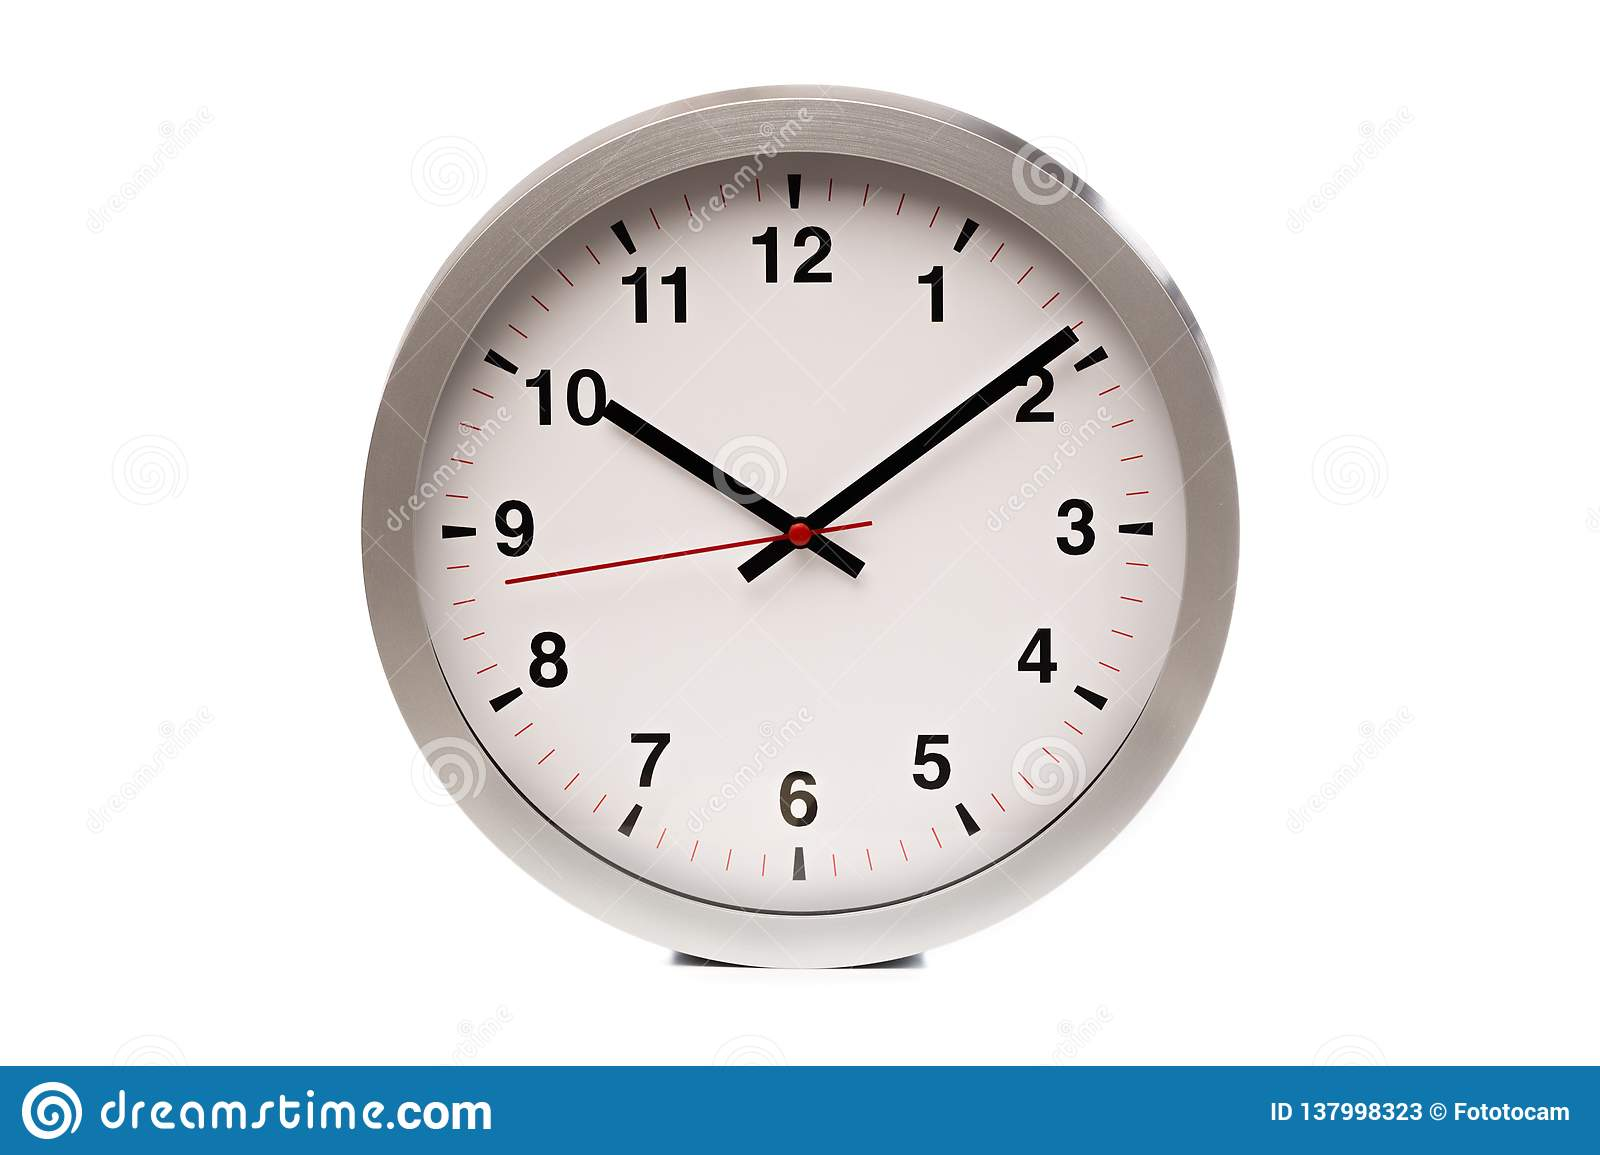 A big white clock shows the time - Image